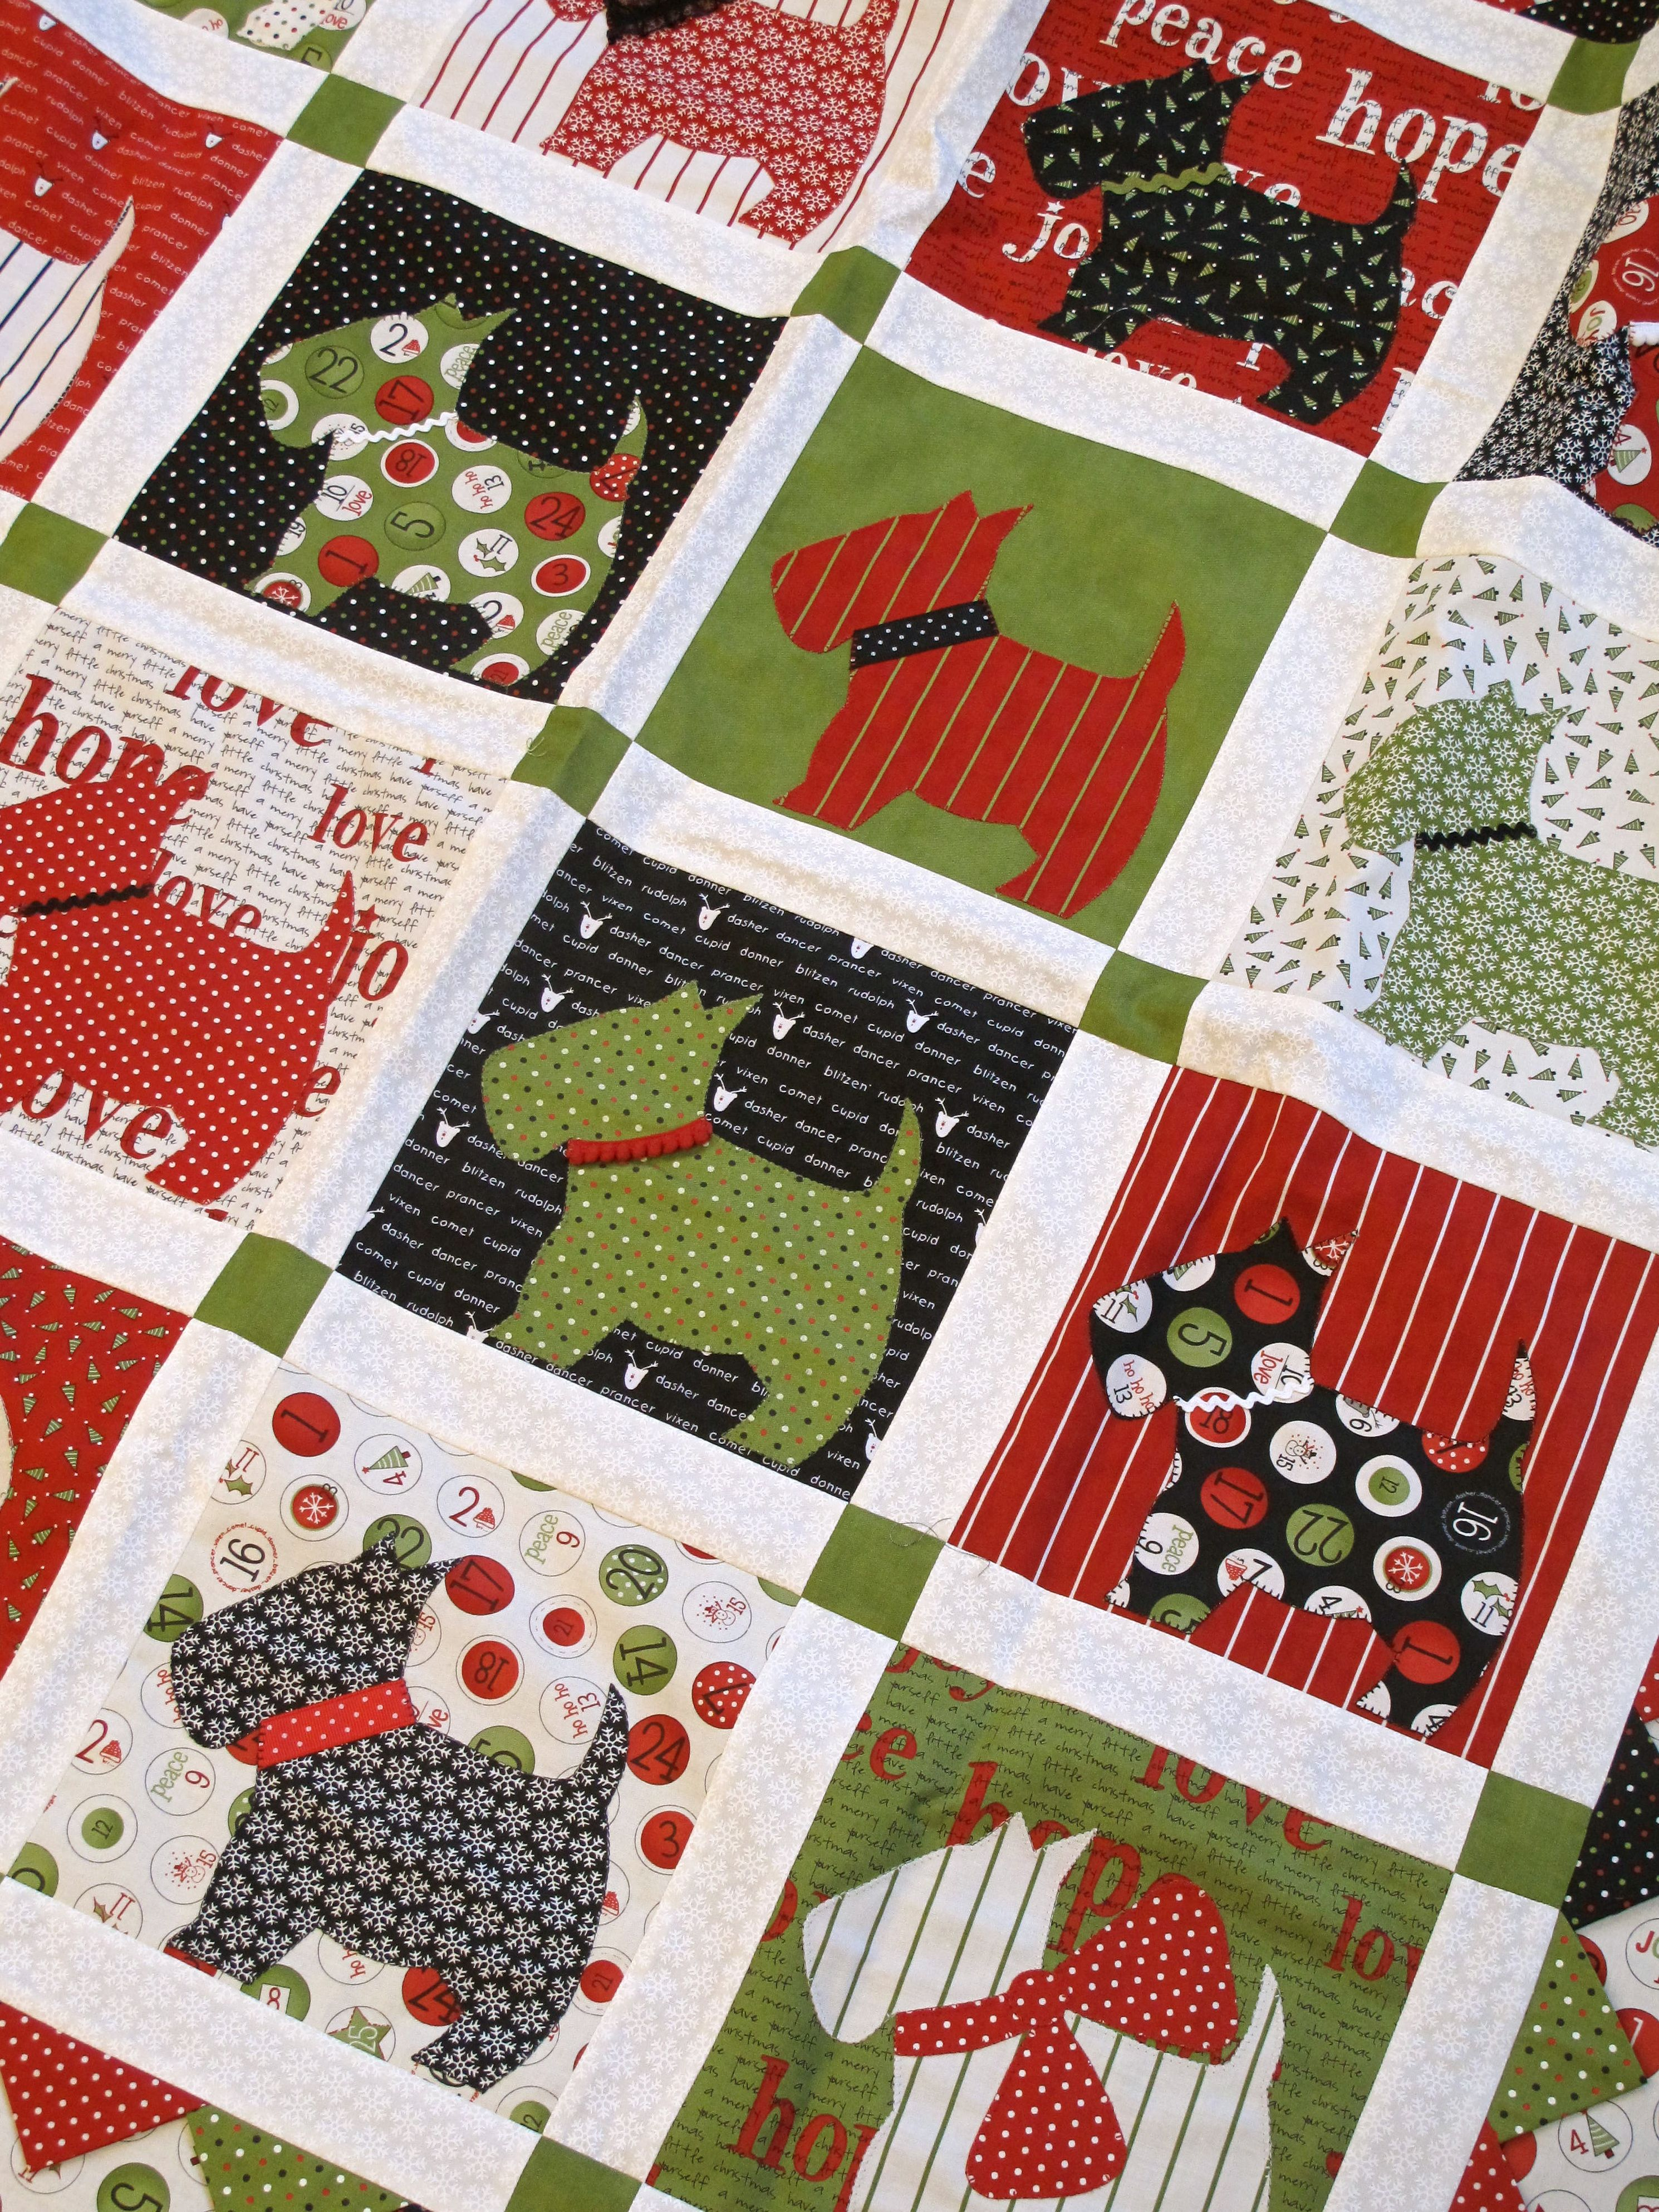 Bunny Hill loves Sweetwater c/o Holly Hill Quilt Shoppe | Moderne ...